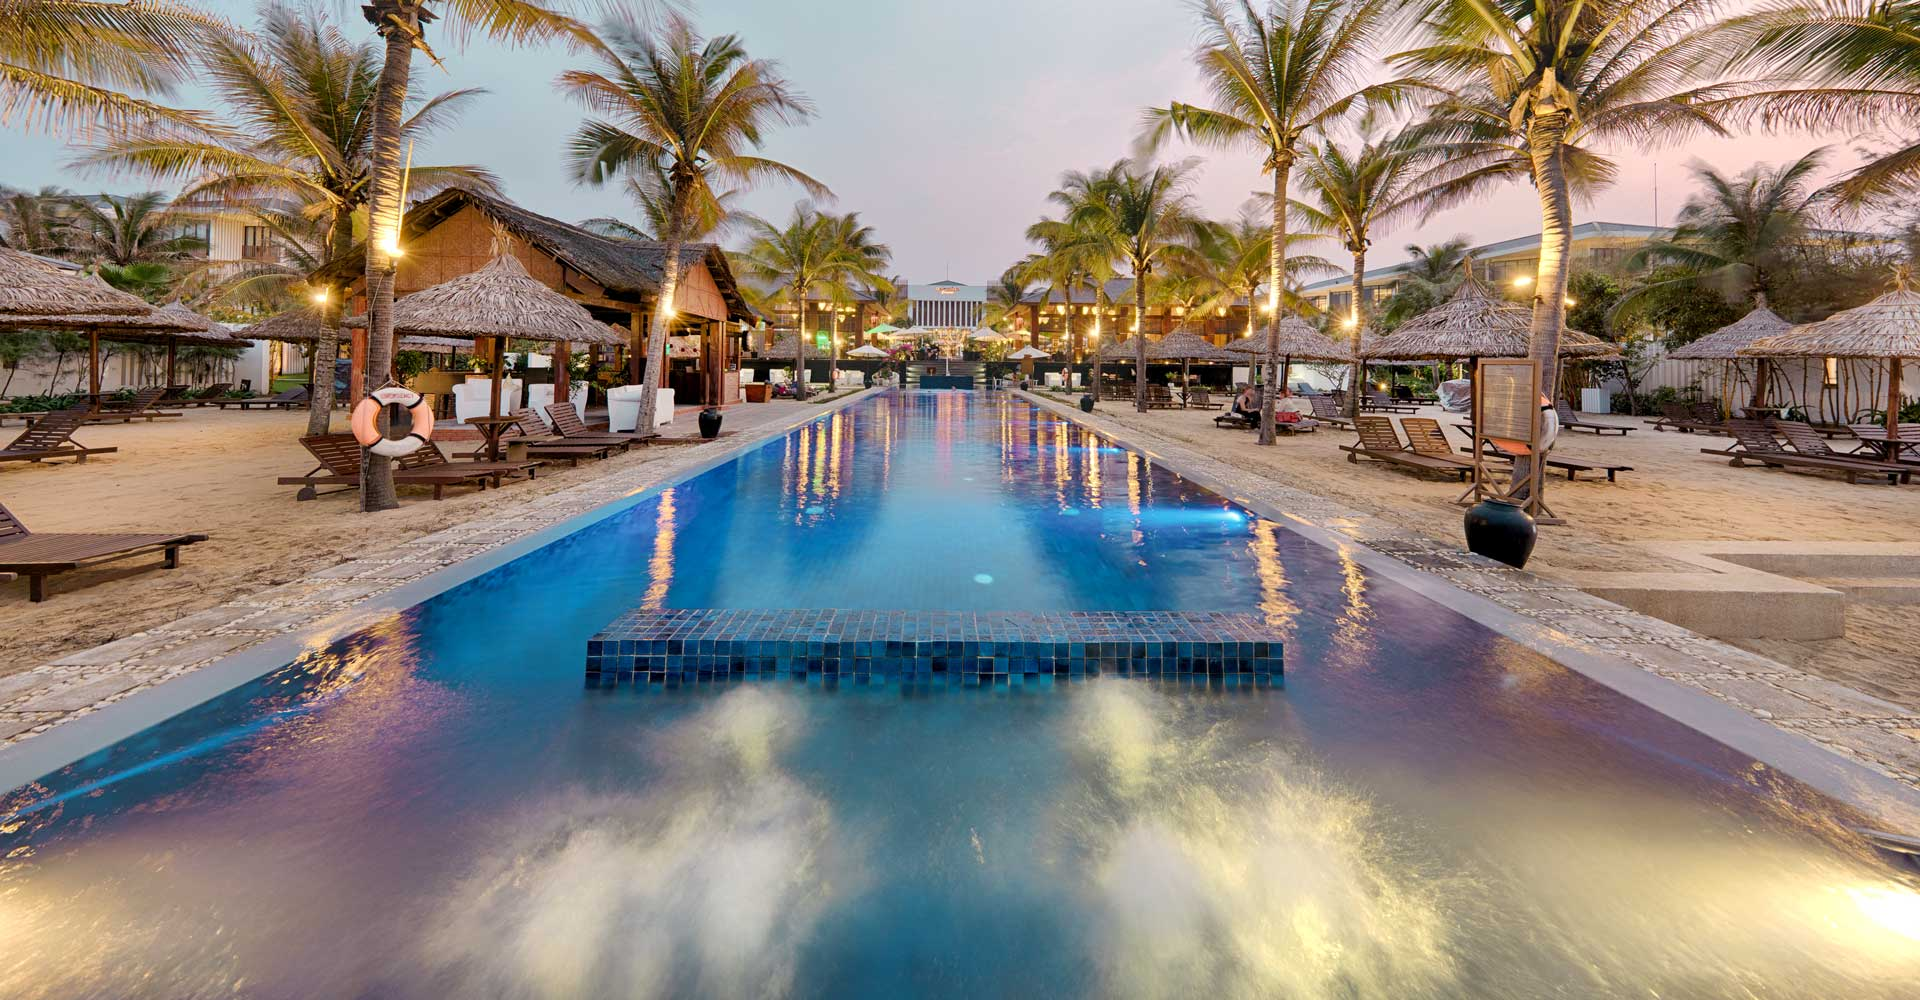 Meet Sunrise Hoi An: One of the Best Hotels in Vietnam found on a Beachfront!